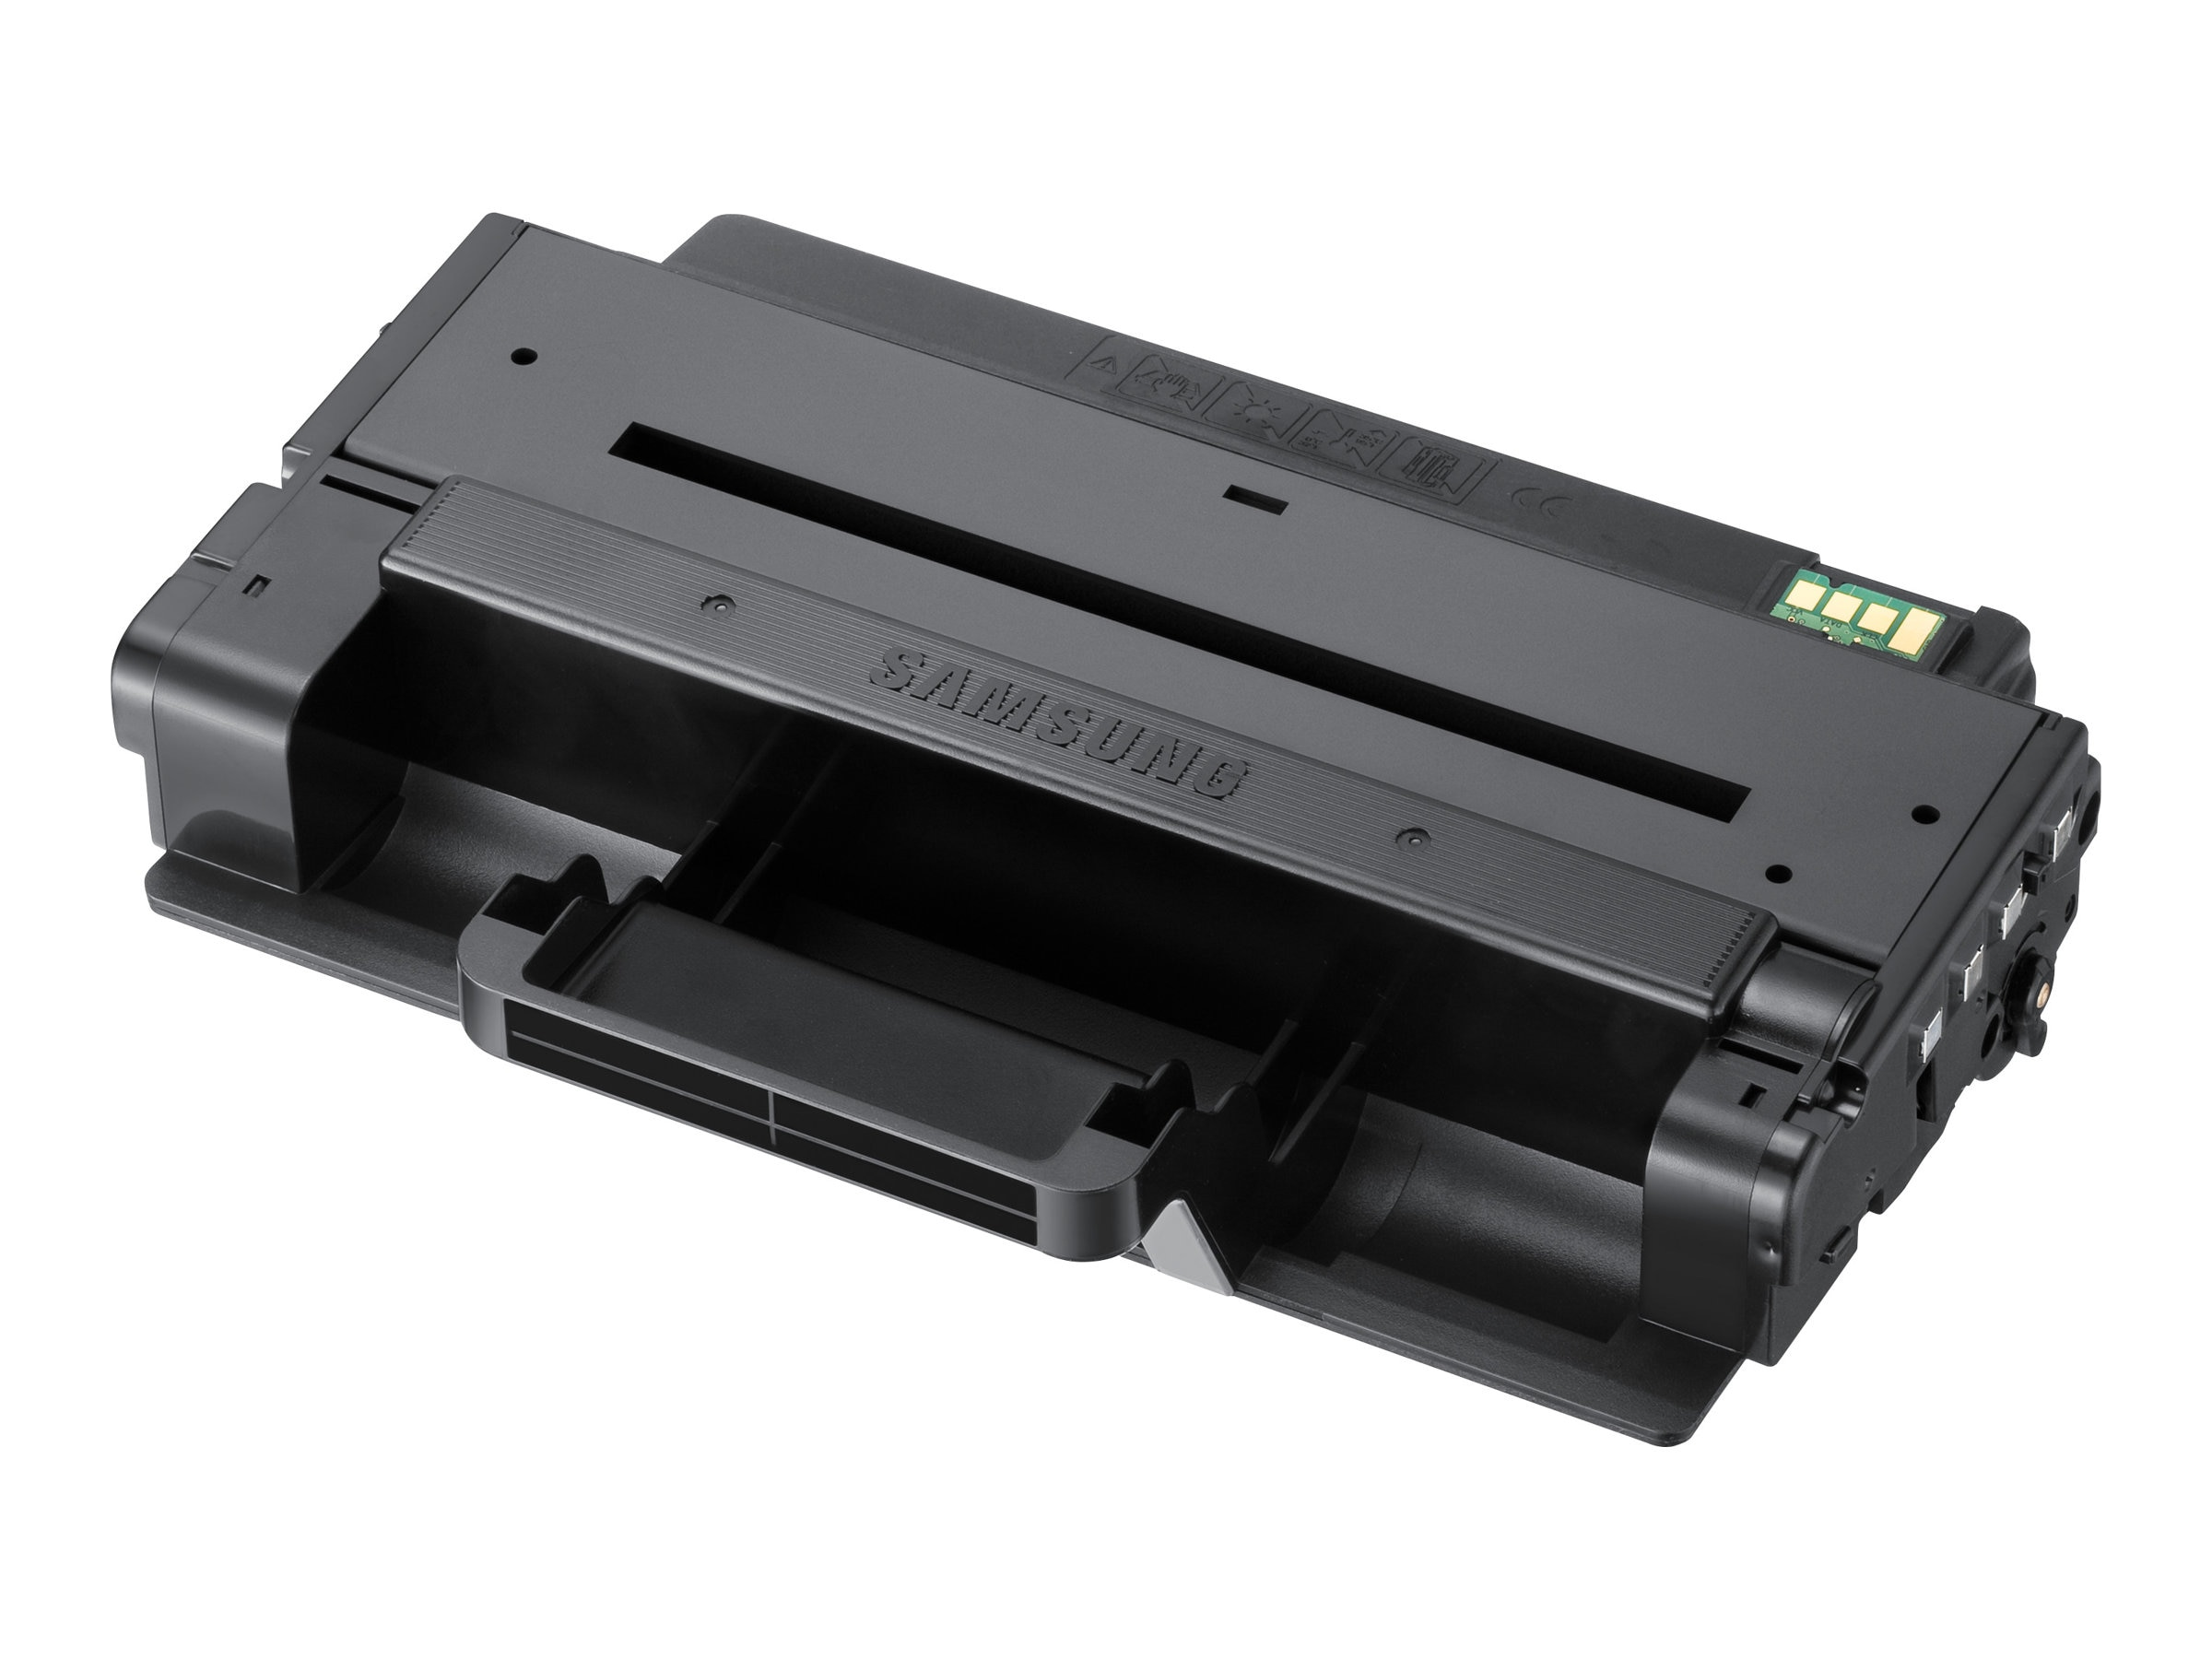 Samsung Black Standard Yield Toner Cartridge for ML-3312ND & ML-3712ND Printers, MLT-D205S, 12370826, Toner and Imaging Components